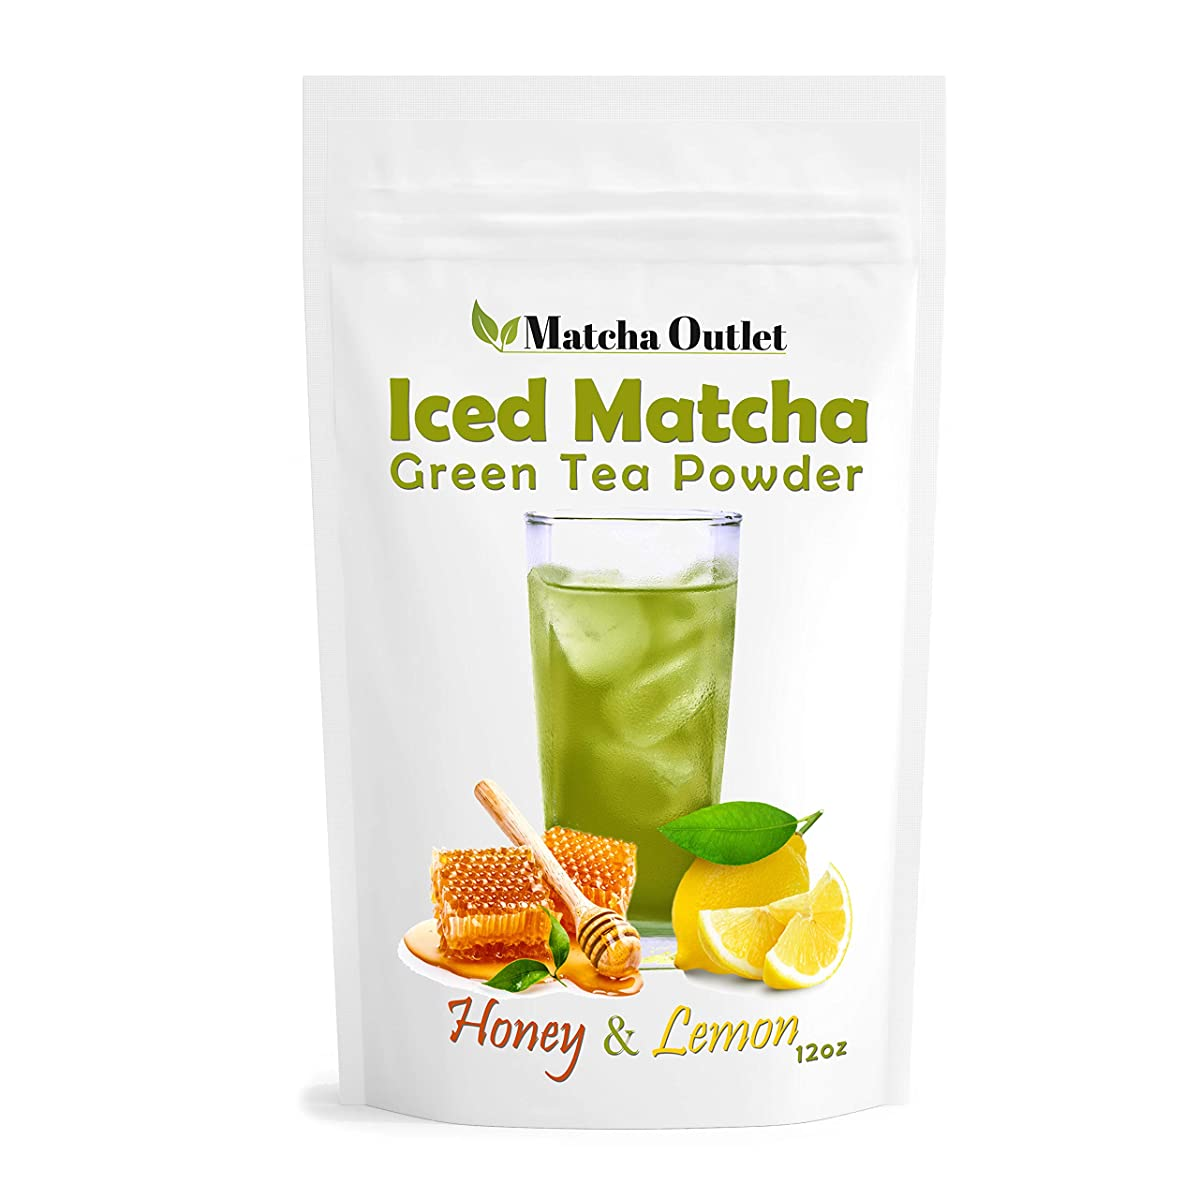 Iced Matcha Honey-Lemon Green Tea Powder (12oz) - Super-Refreshing and Great for Summer - Packed with Antioxidants, All-Natural Energy Boost - Made with Ceremonial Japanese Matcha